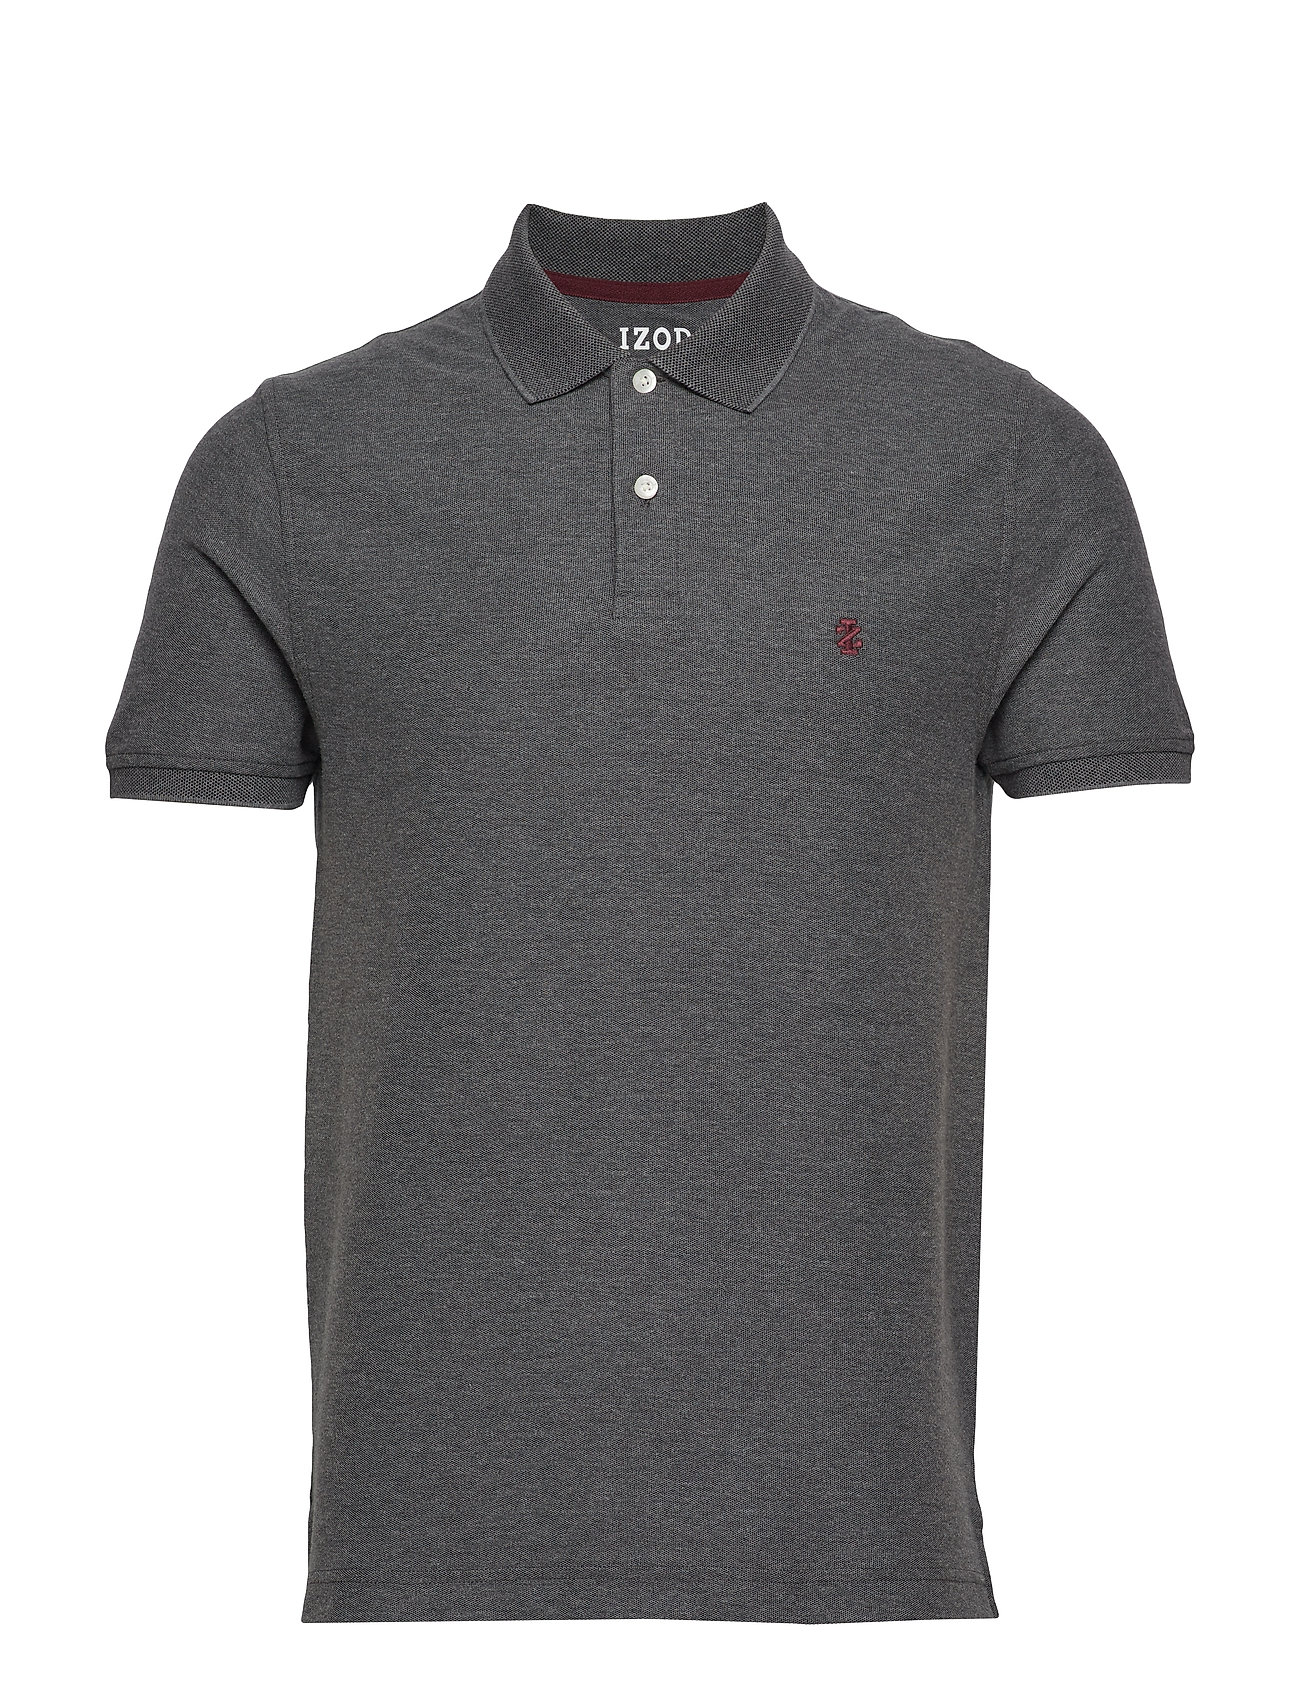 IZOD PERFORMANCE PIQUE POLO - CARBON HTR